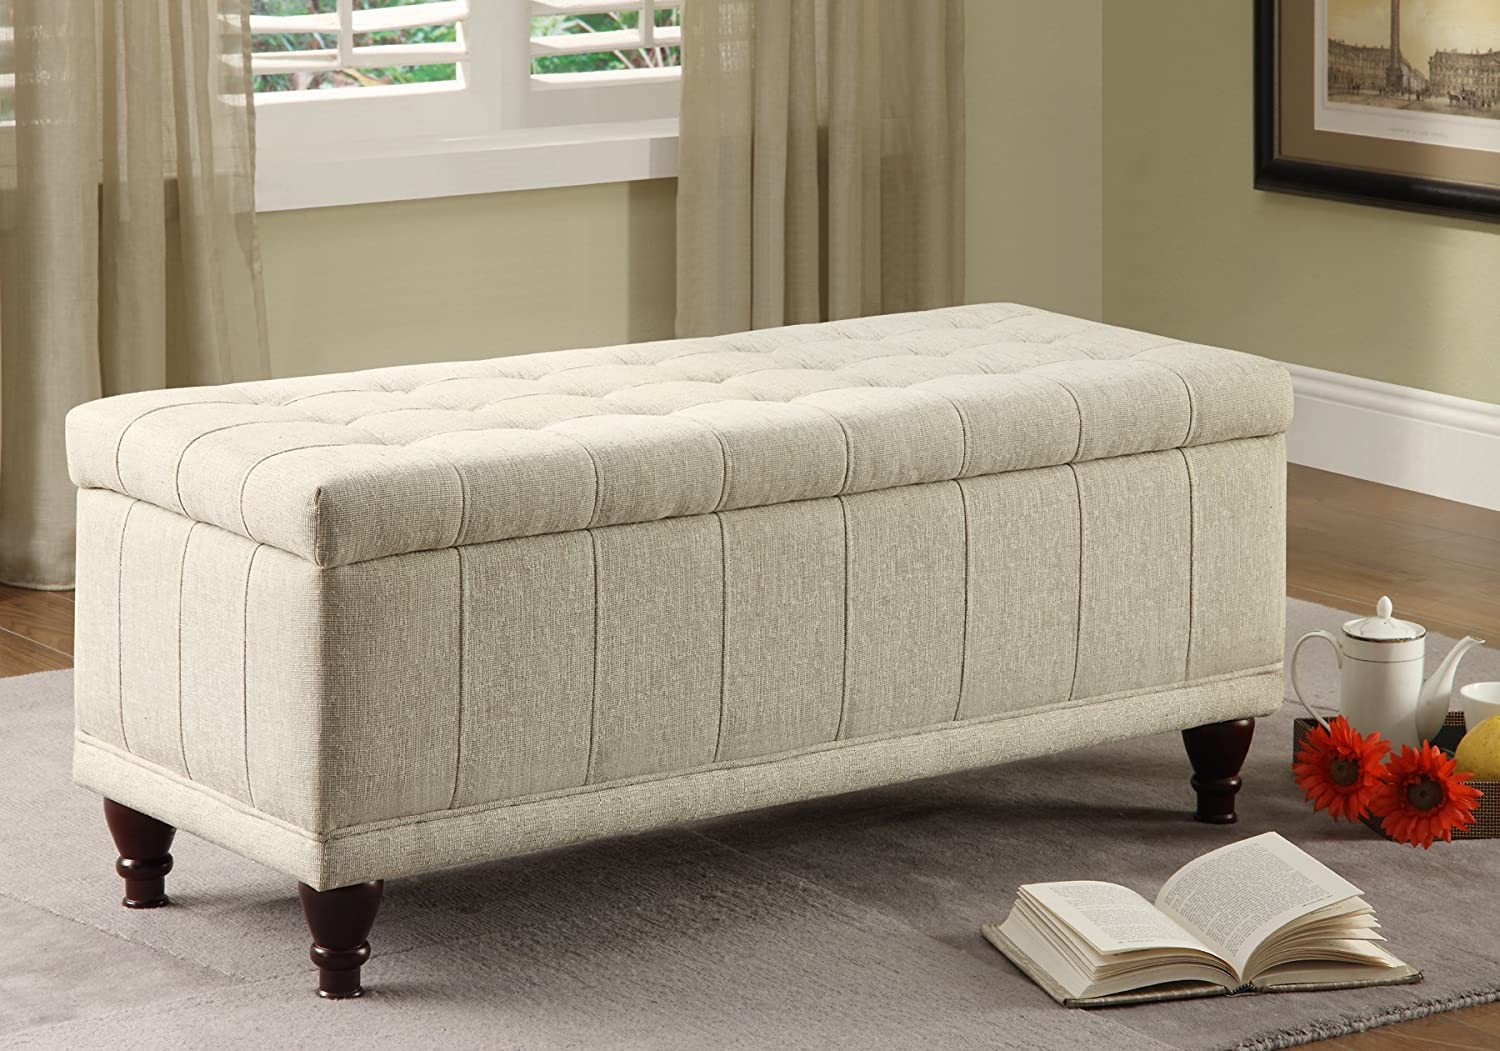 Amazon.com: Homelegance 4730NF Lift Top Storage Bench with Tufted ...